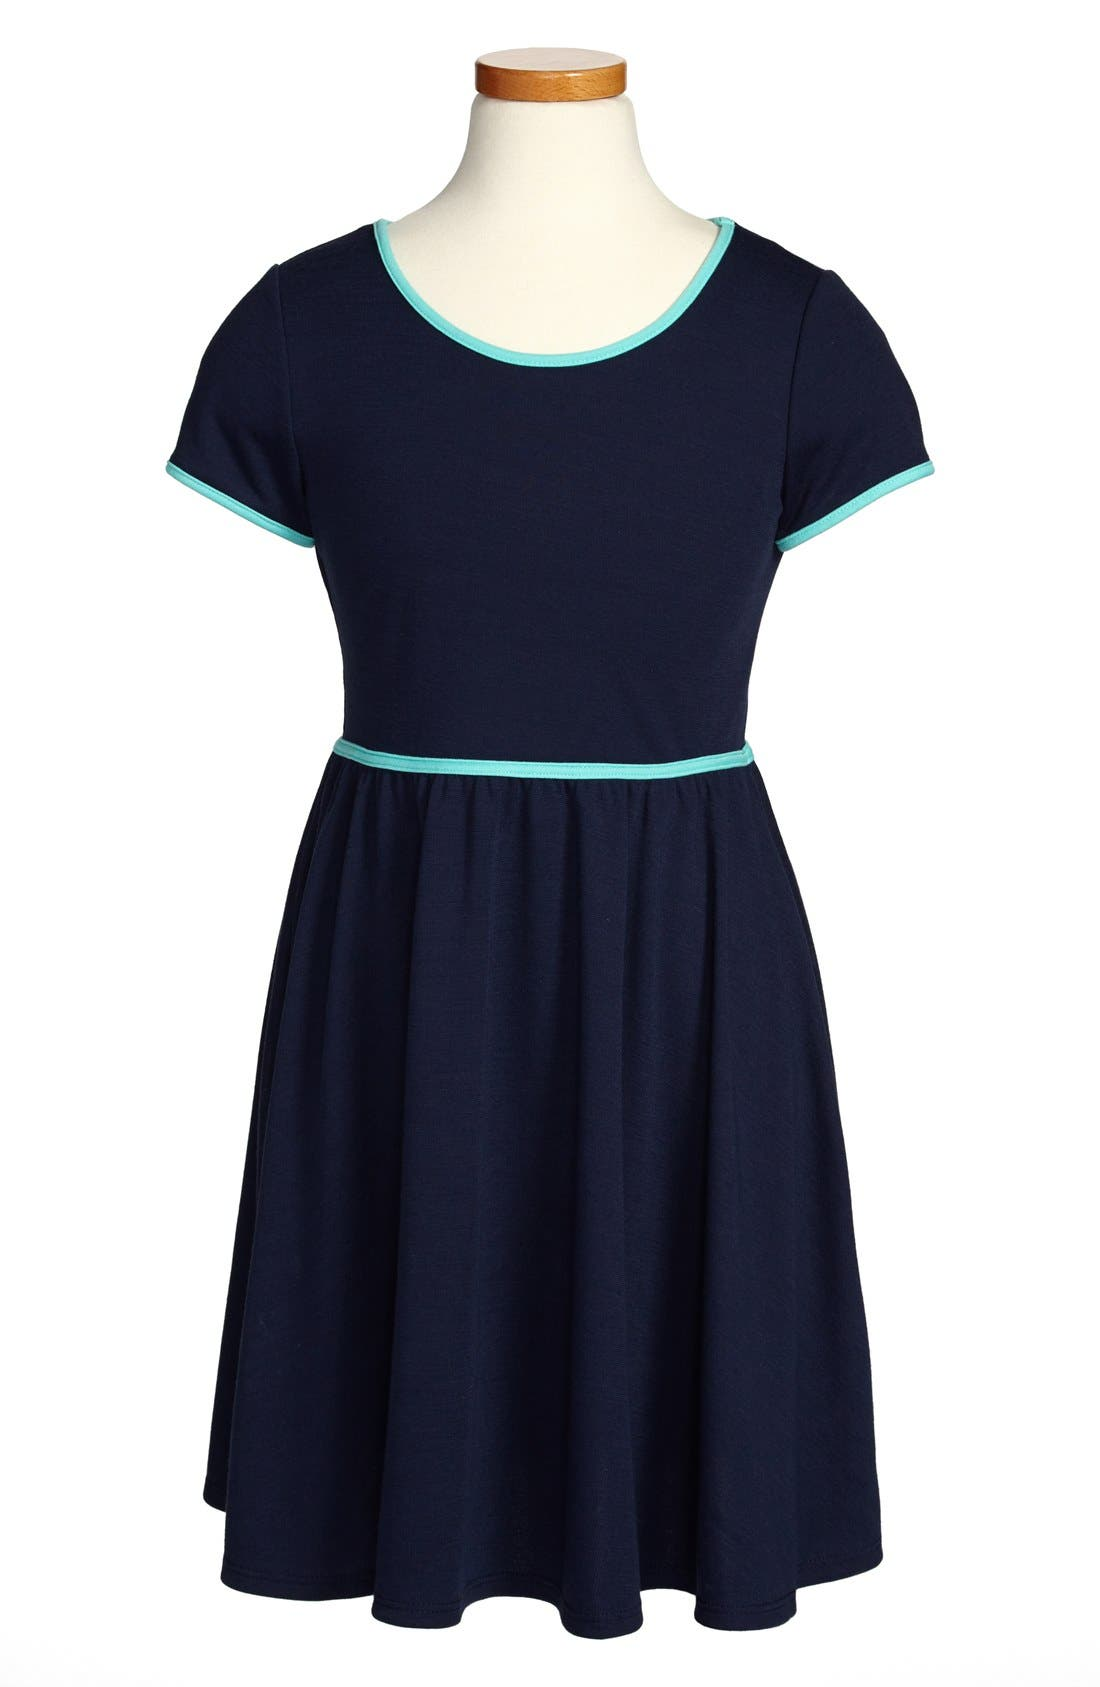 Alternate Image 1 Selected - Soprano Cap Sleeve Knit Dress (Big Girls)